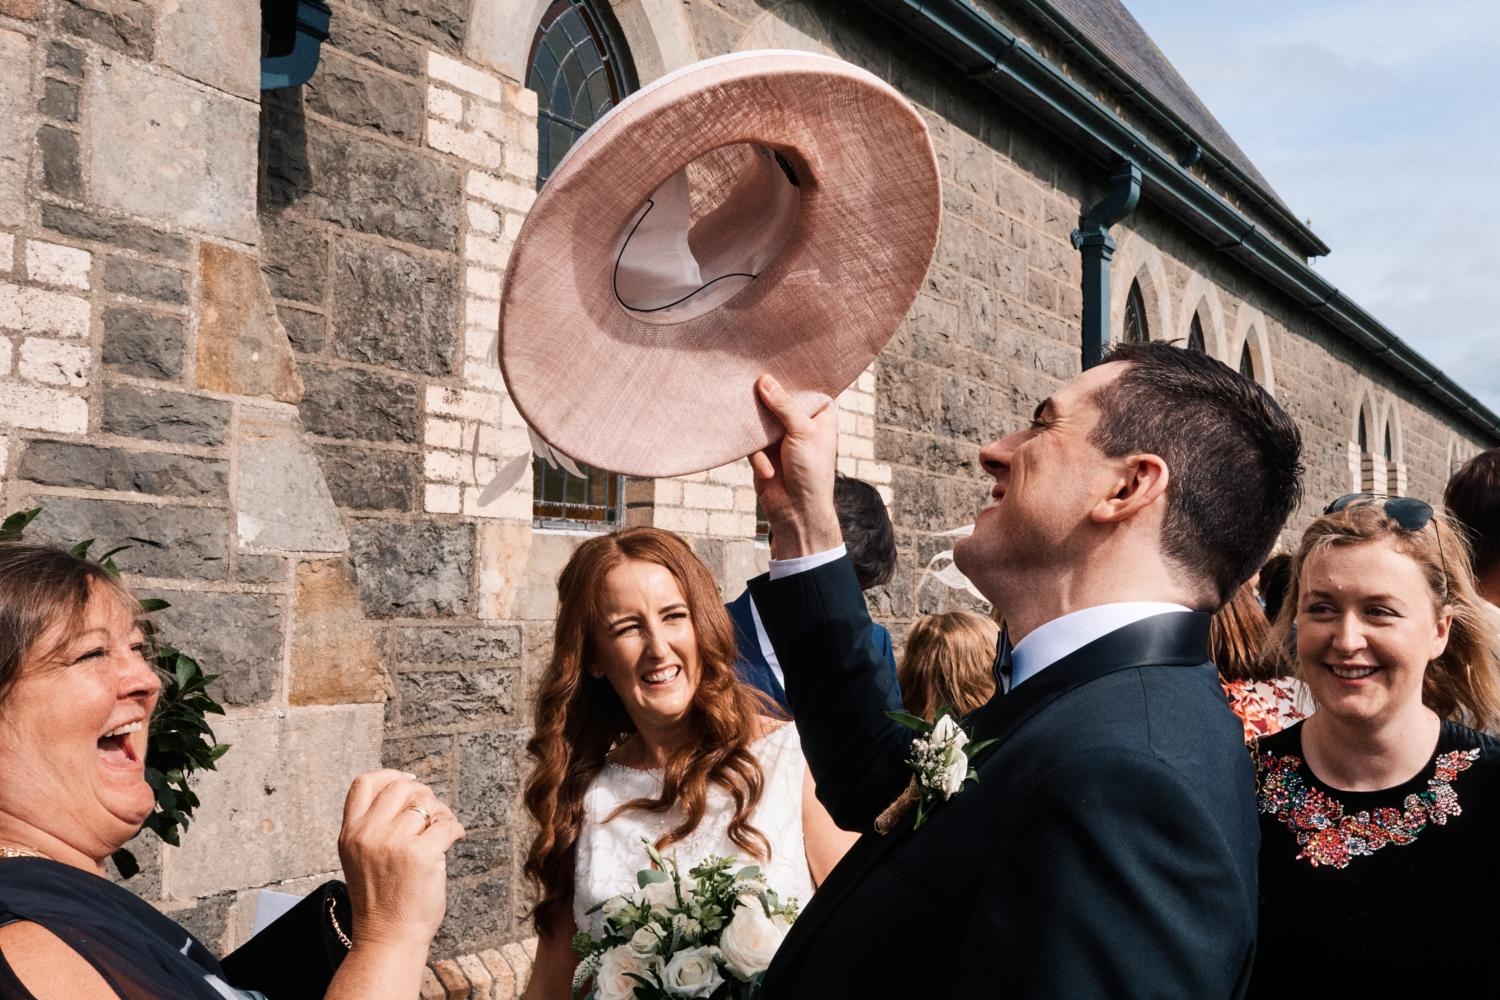 Groom lifts pink hat in the air to amusement of wedding guests